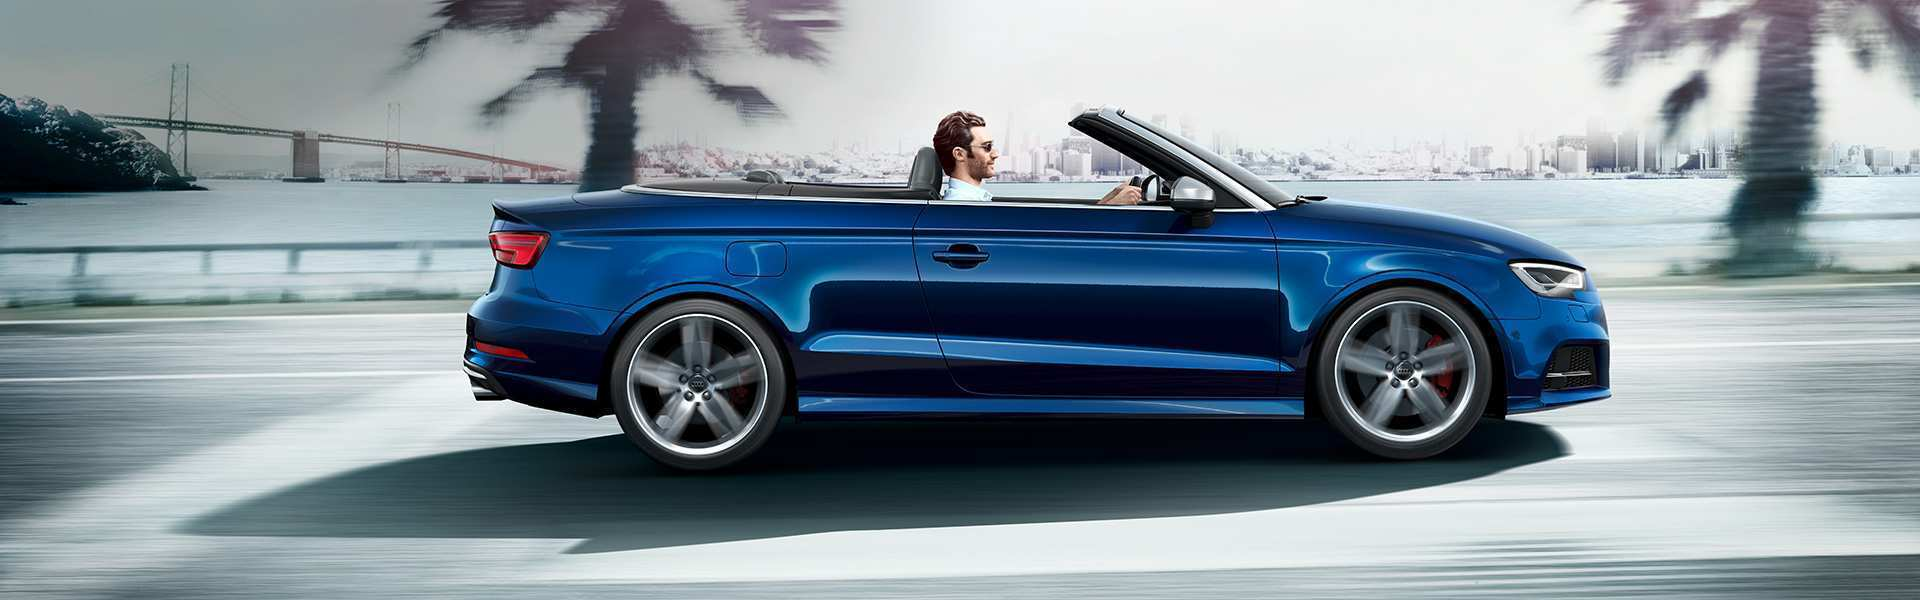 25 All New 2020 Audi Rs5 Cabriolet Research New